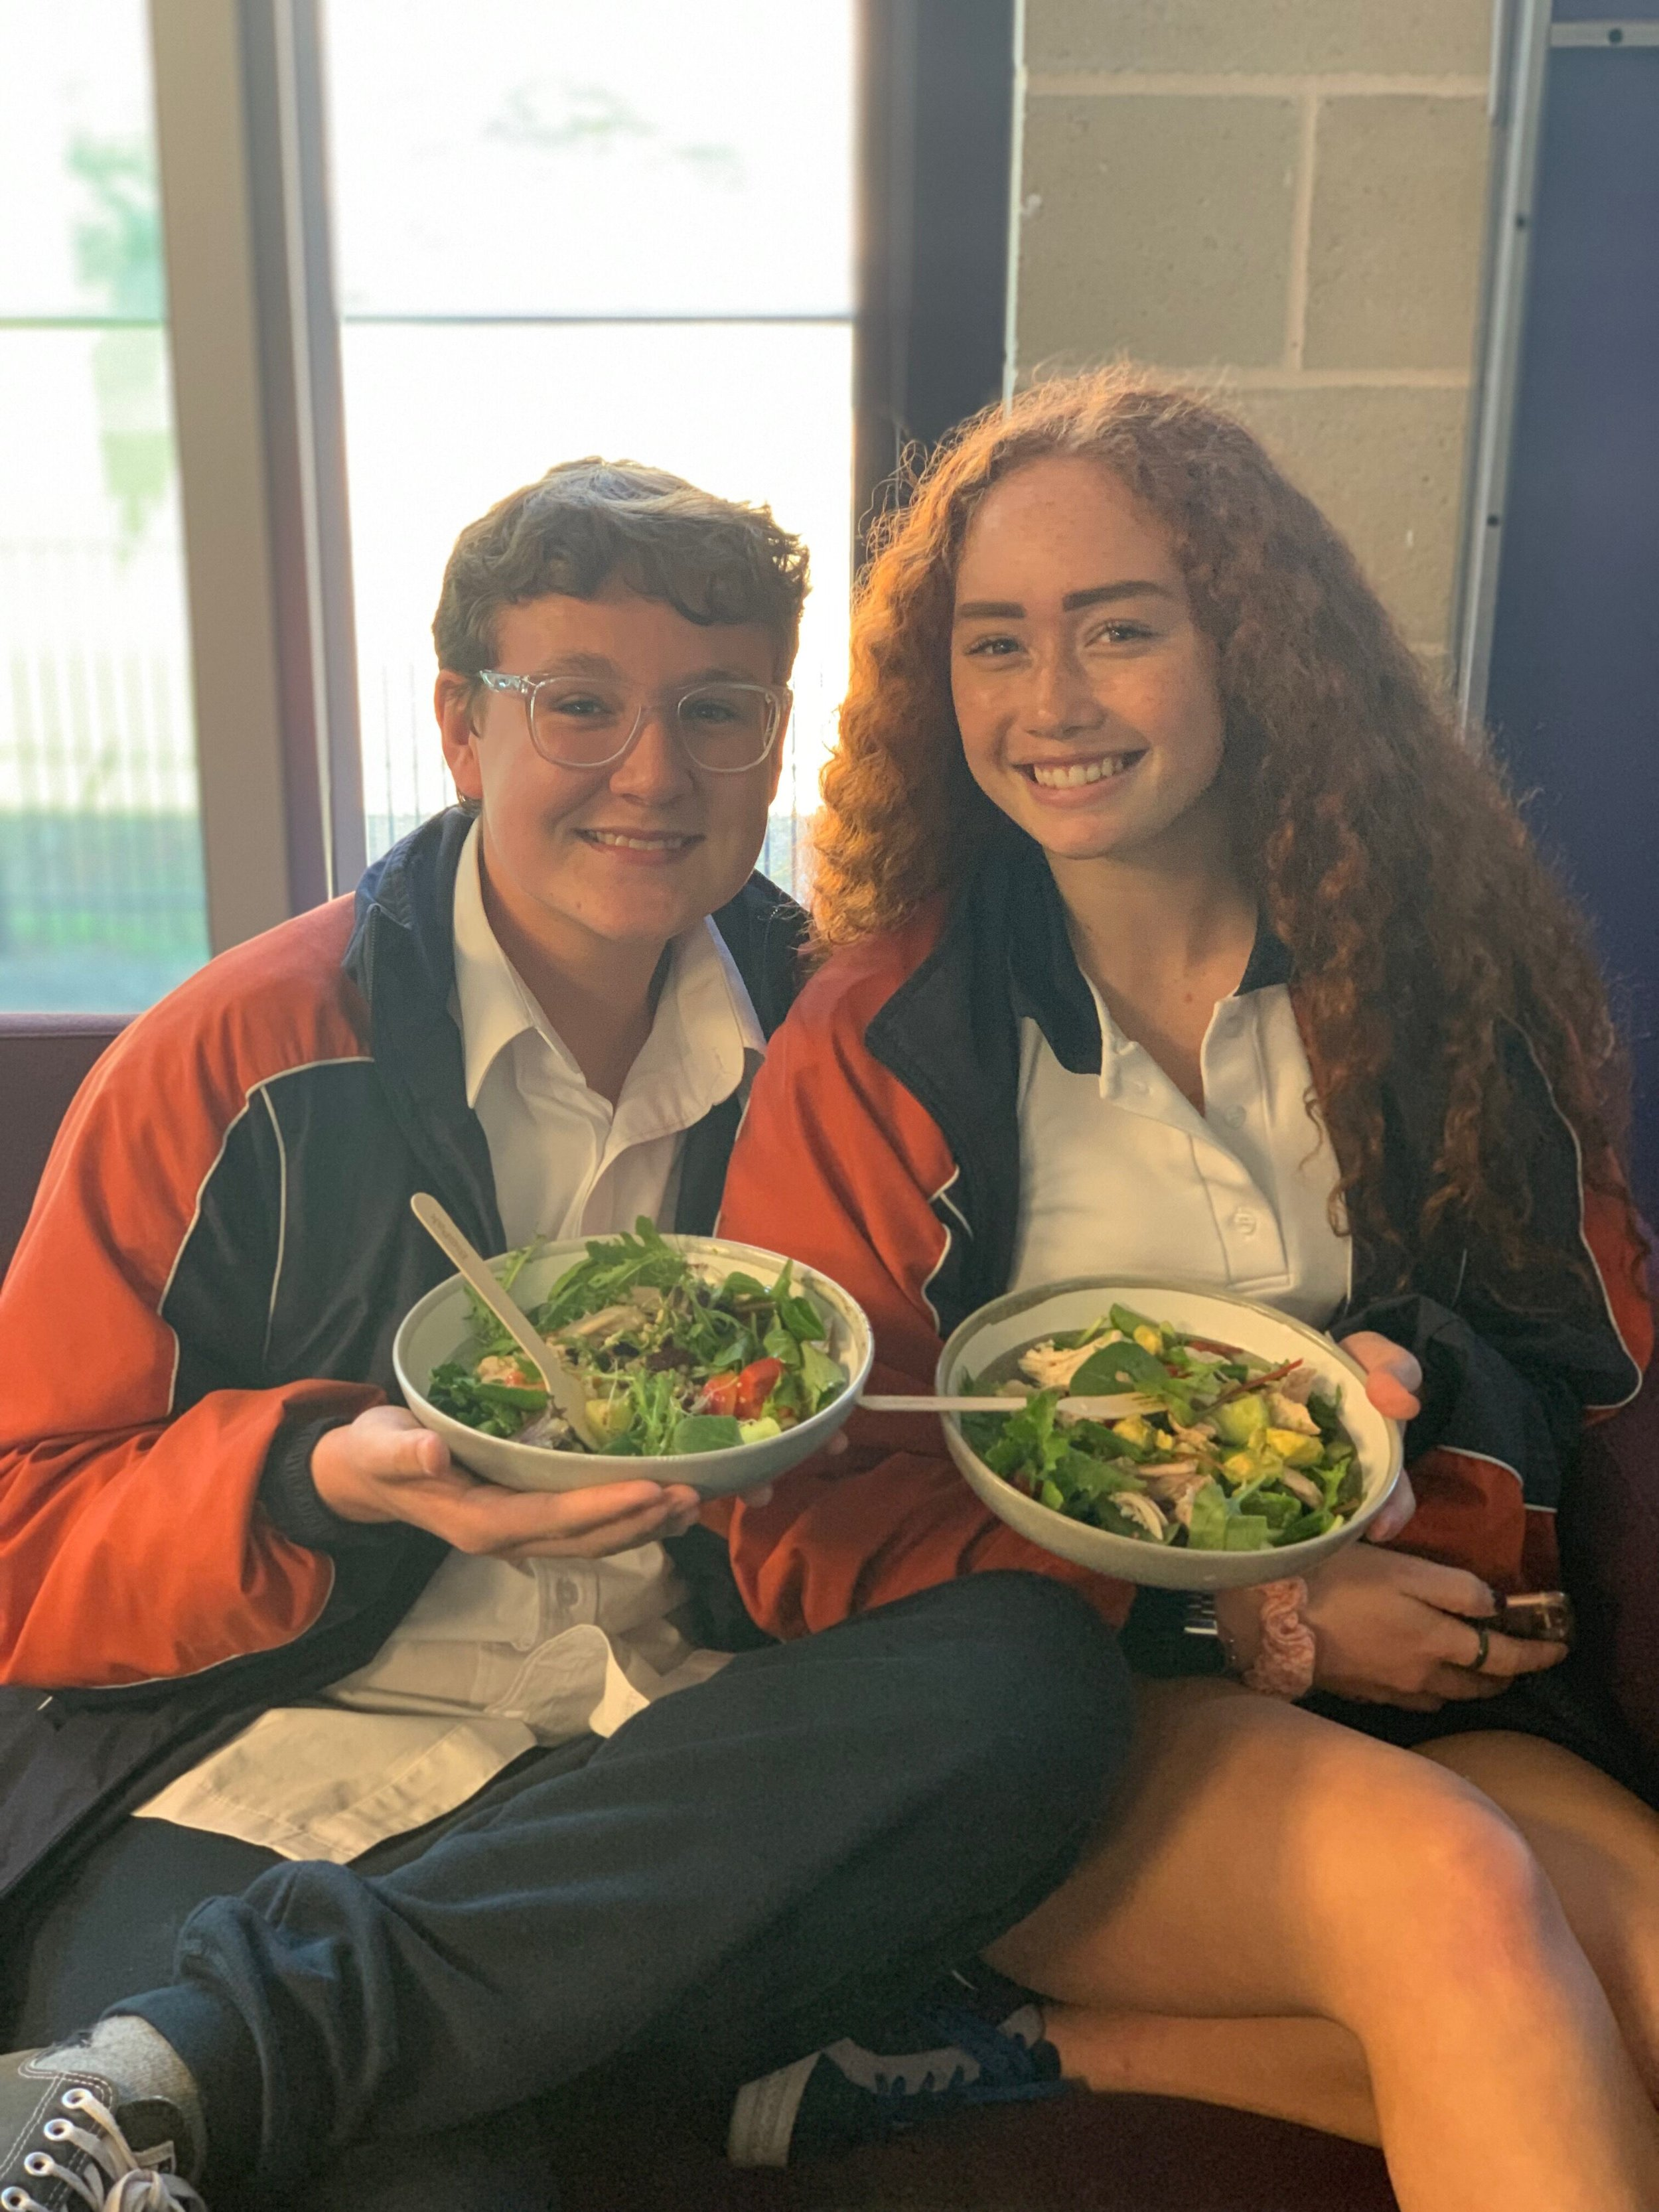 I love this picture of two besties at Dalyellup College enjoying their Macro Bowls. Healthy and happy :)